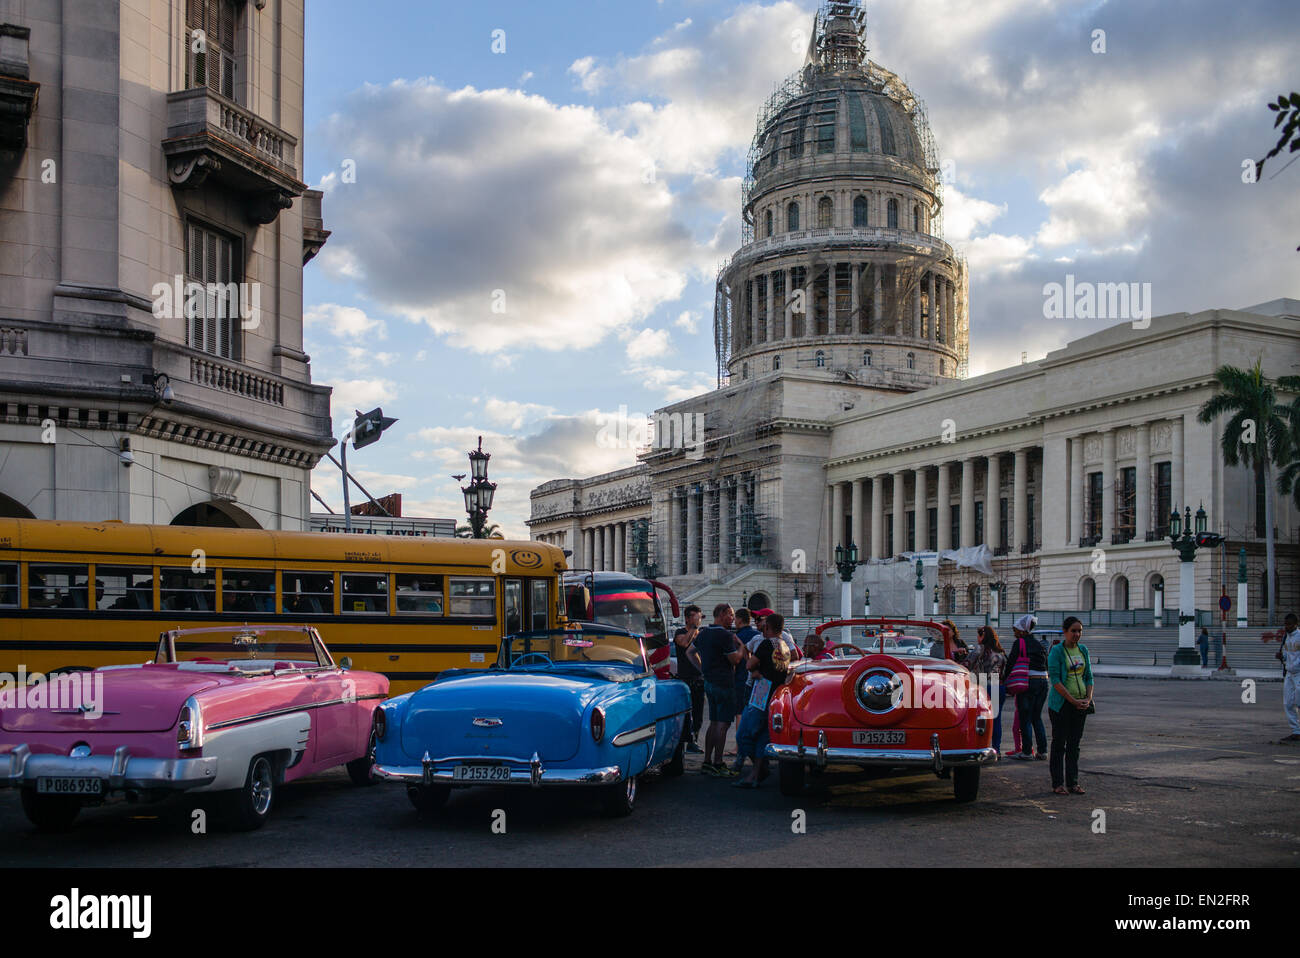 Vintage cars being used as taxis on the street in front of the ...